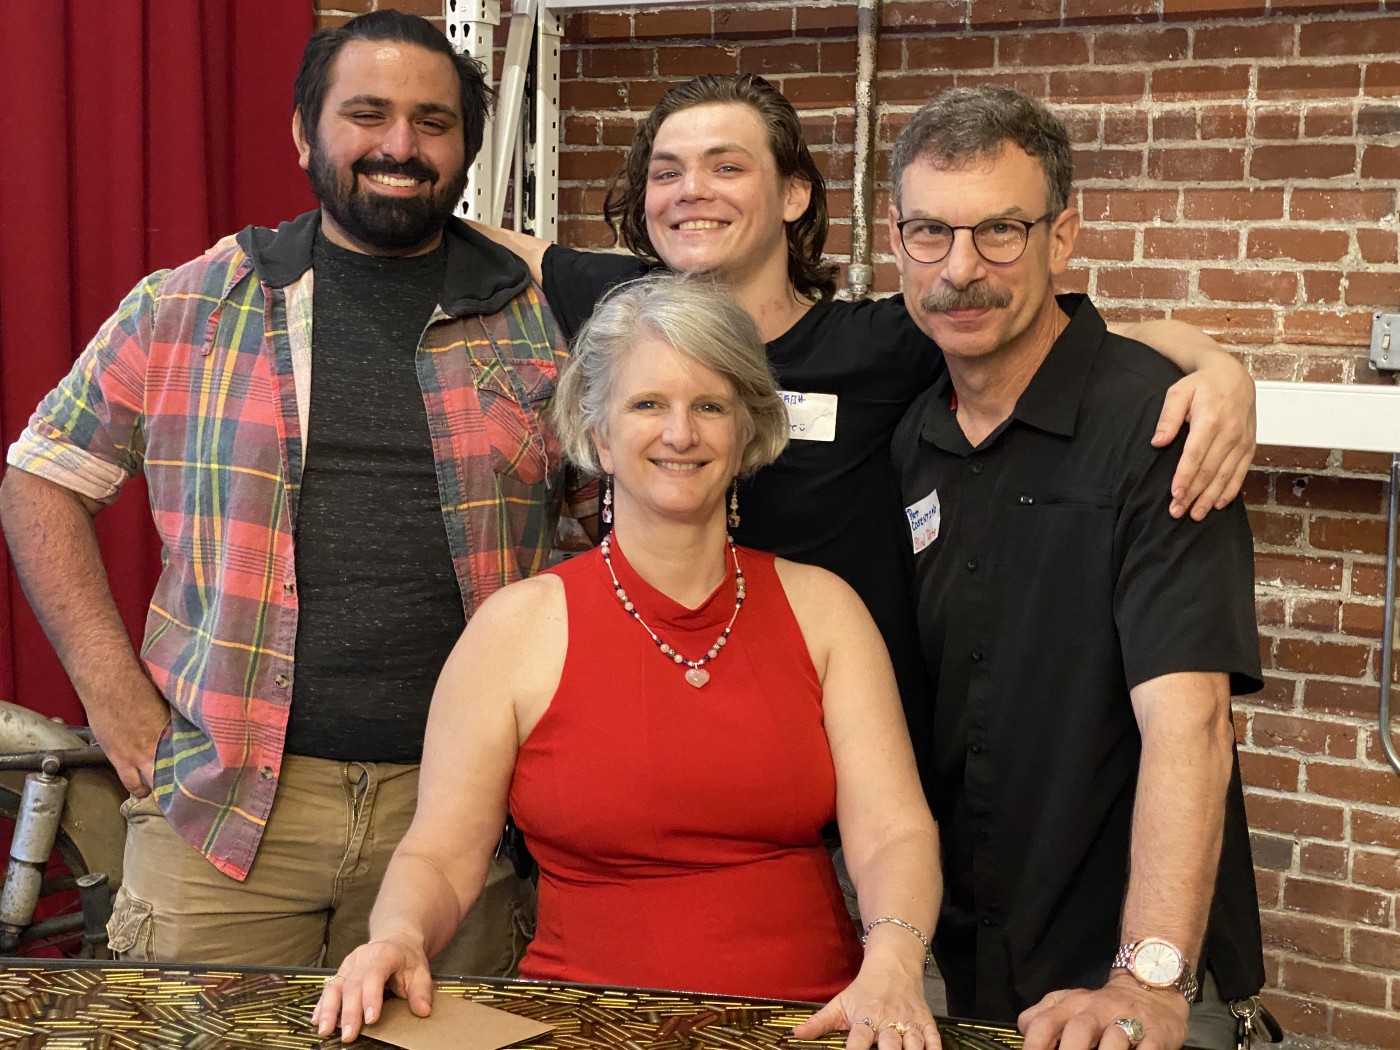 Cameron, rear center, with brother Dominic, left, father Patrick, right, and mother Vickie. Photo courtesy: Cosentino family.